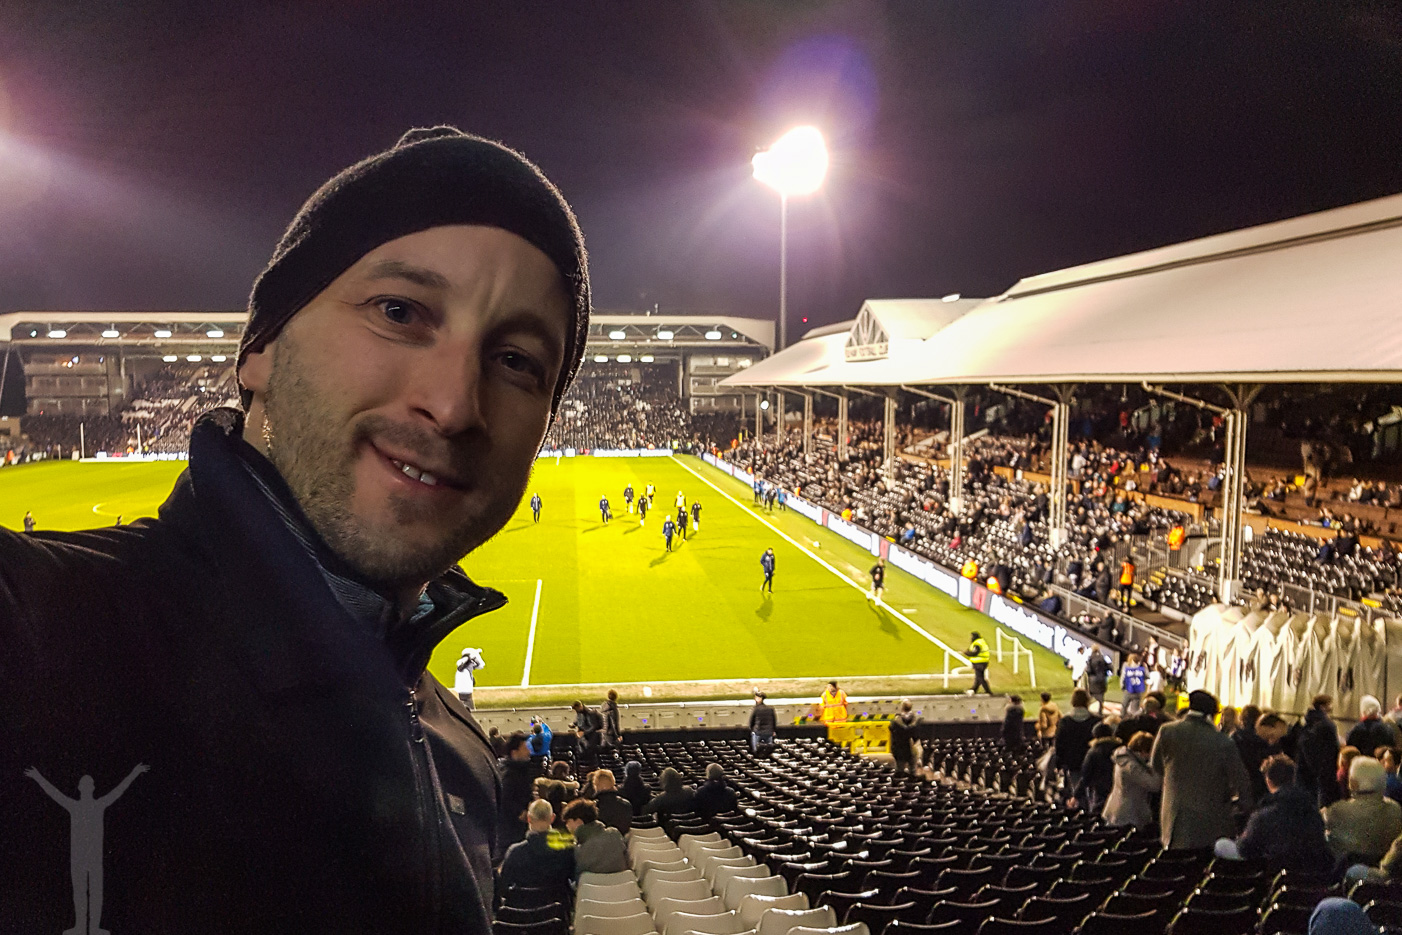 Fotbollsmatch på Craven Cottage